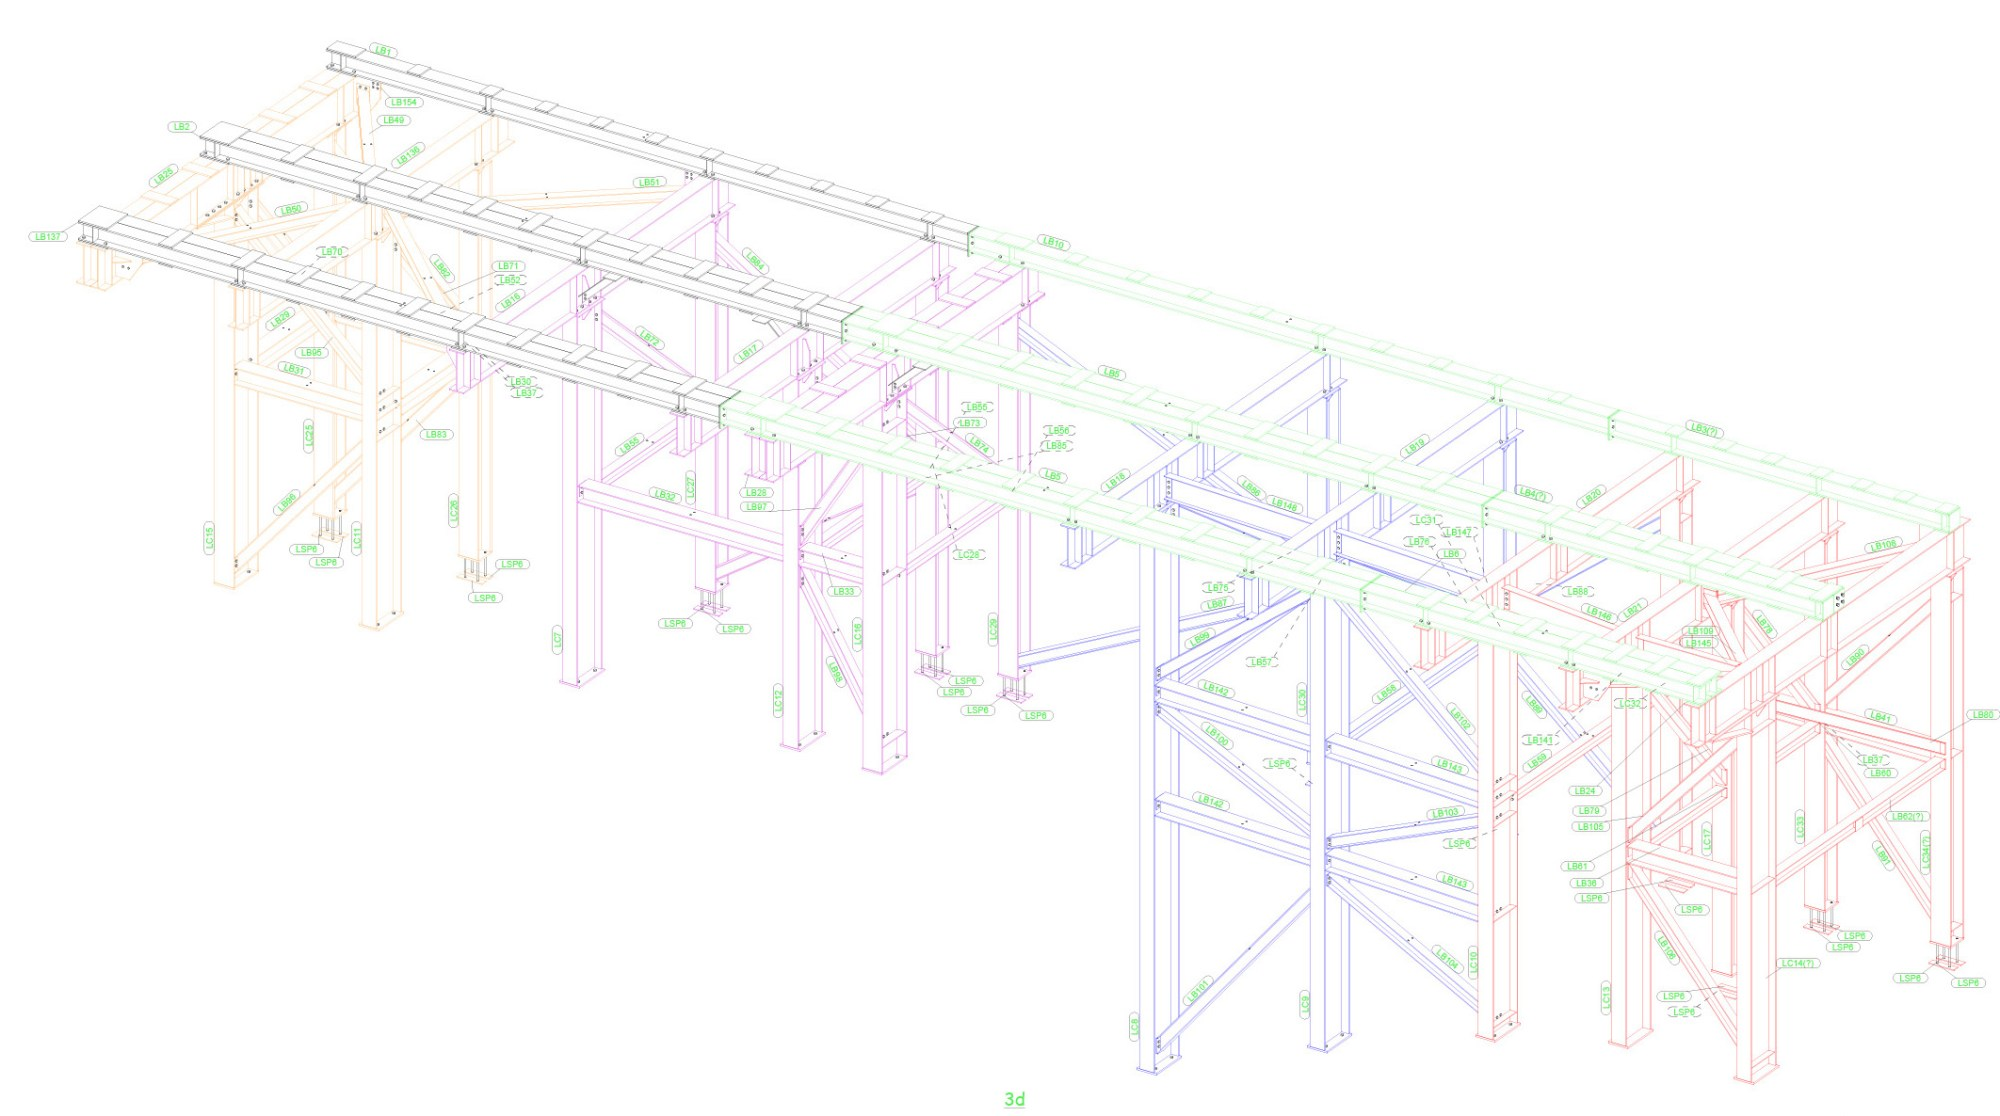 hight resolution of  of site welfare structure and 4no tower crane grillages the grillages comprise of fabricated plate girder sections and complex bolted connections